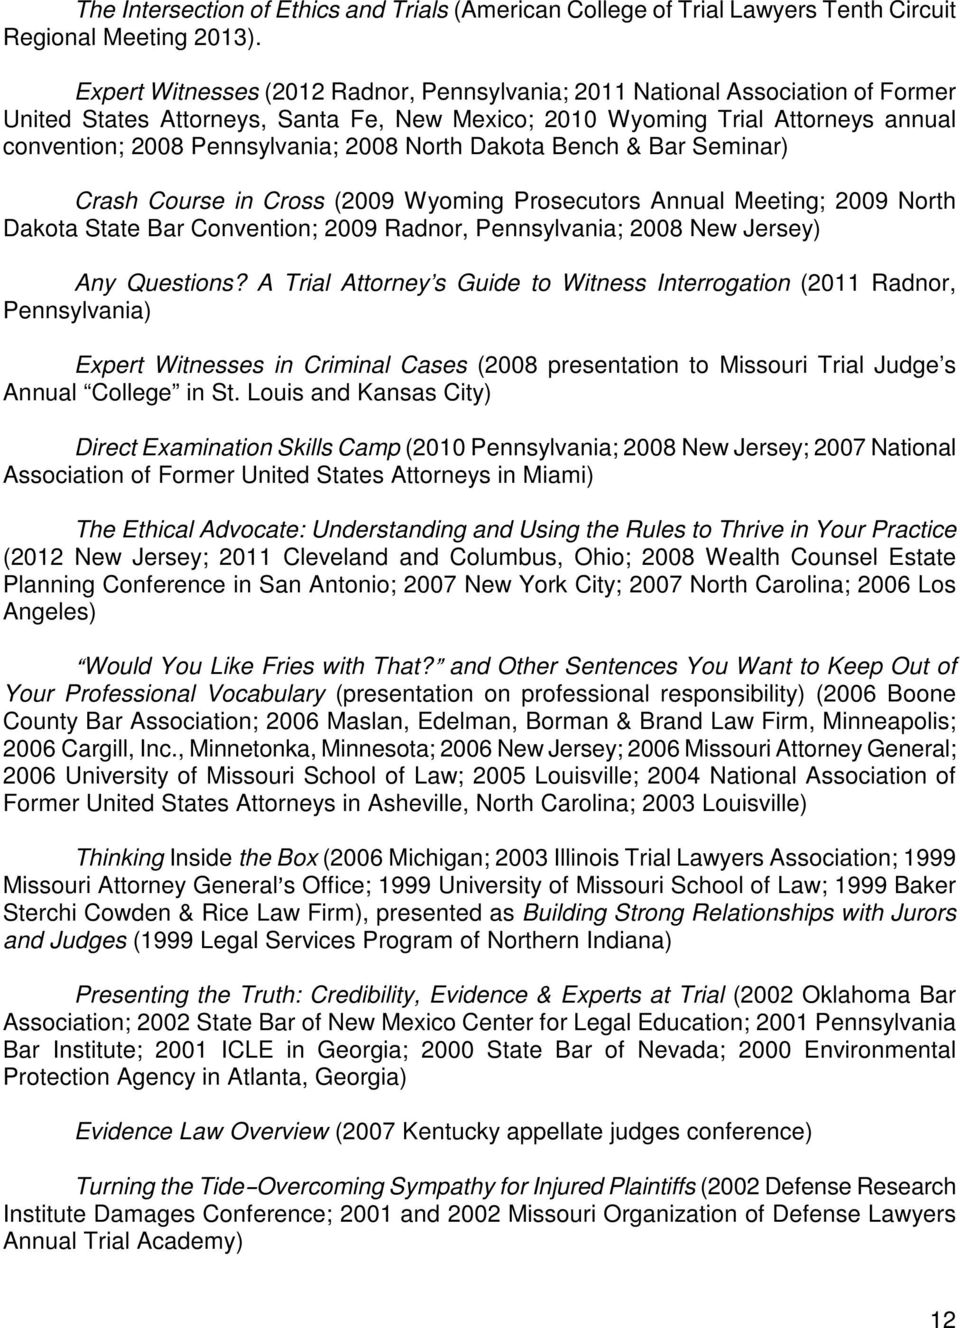 North Dakota Bench & Bar Seminar) Crash Course in Cross (2009 Wyoming Prosecutors Annual Meeting; 2009 North Dakota State Bar Convention; 2009 Radnor, Pennsylvania; 2008 New Jersey) Any Questions?